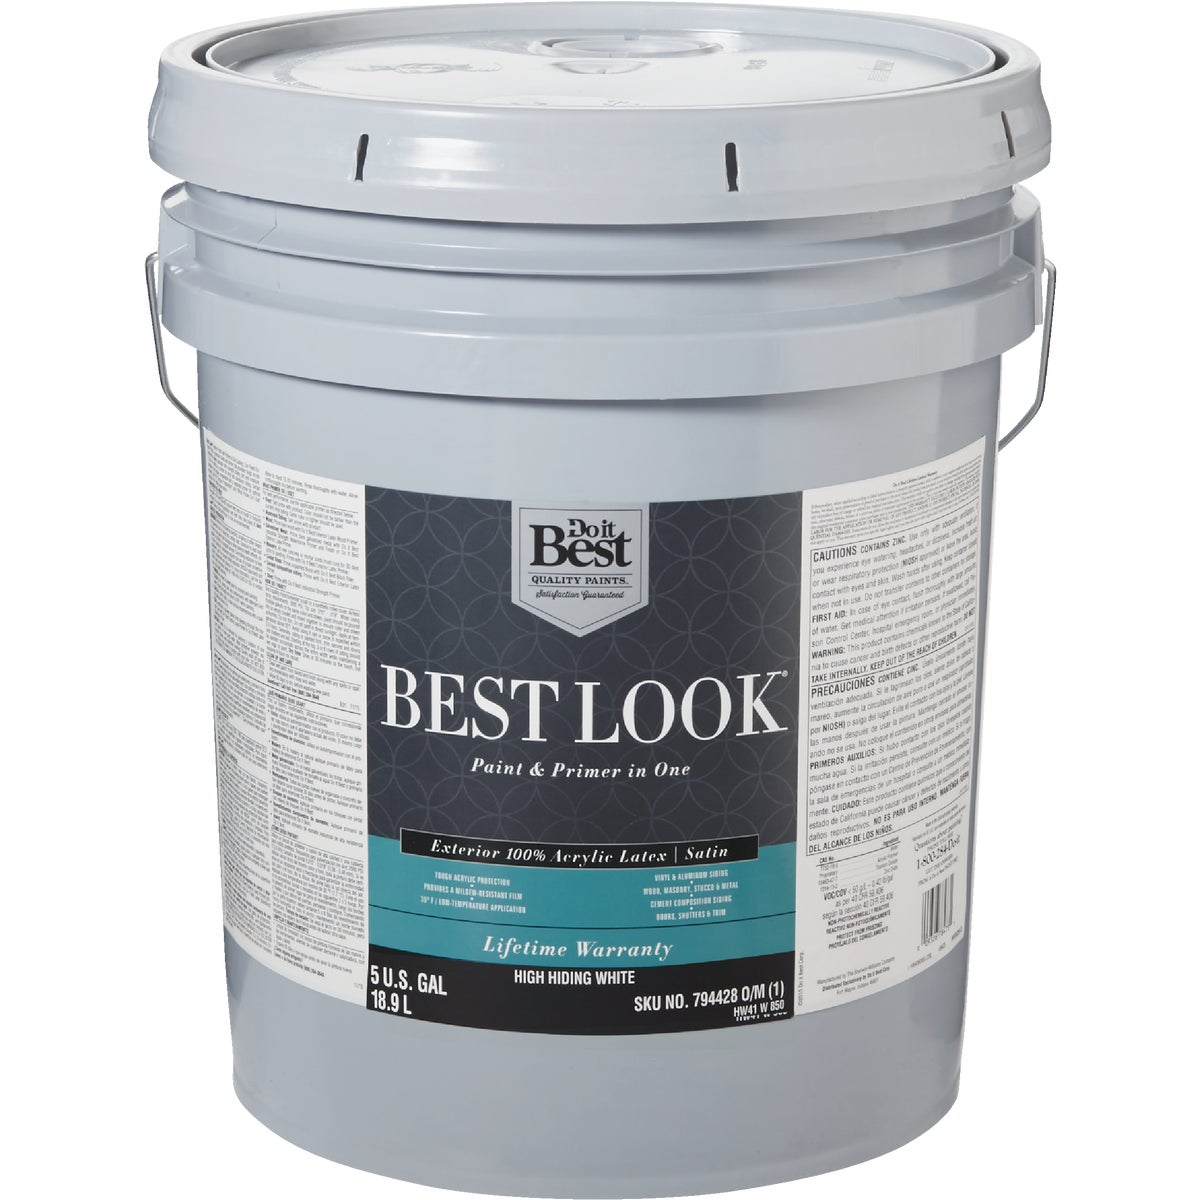 Best Look 100 Acrylic Latex Paint Primer In One Satin Exterior House Paint Hw41w0850 20